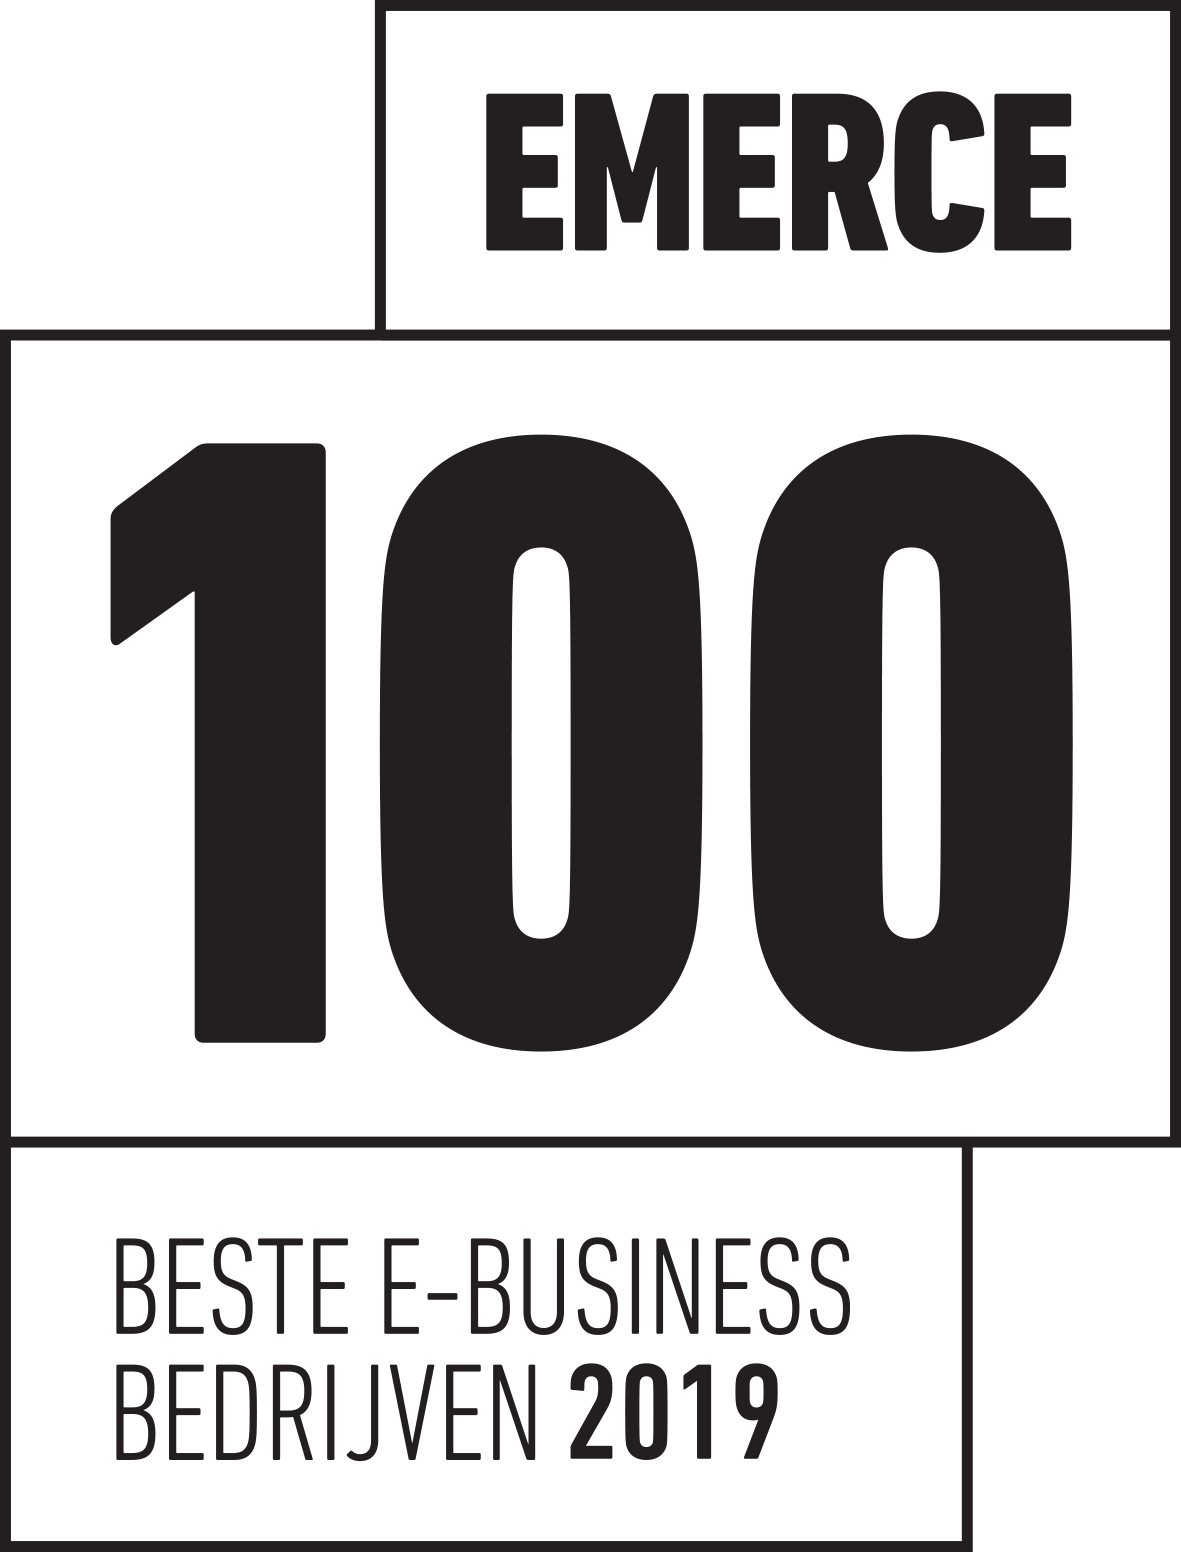 Emerce top 100 2019